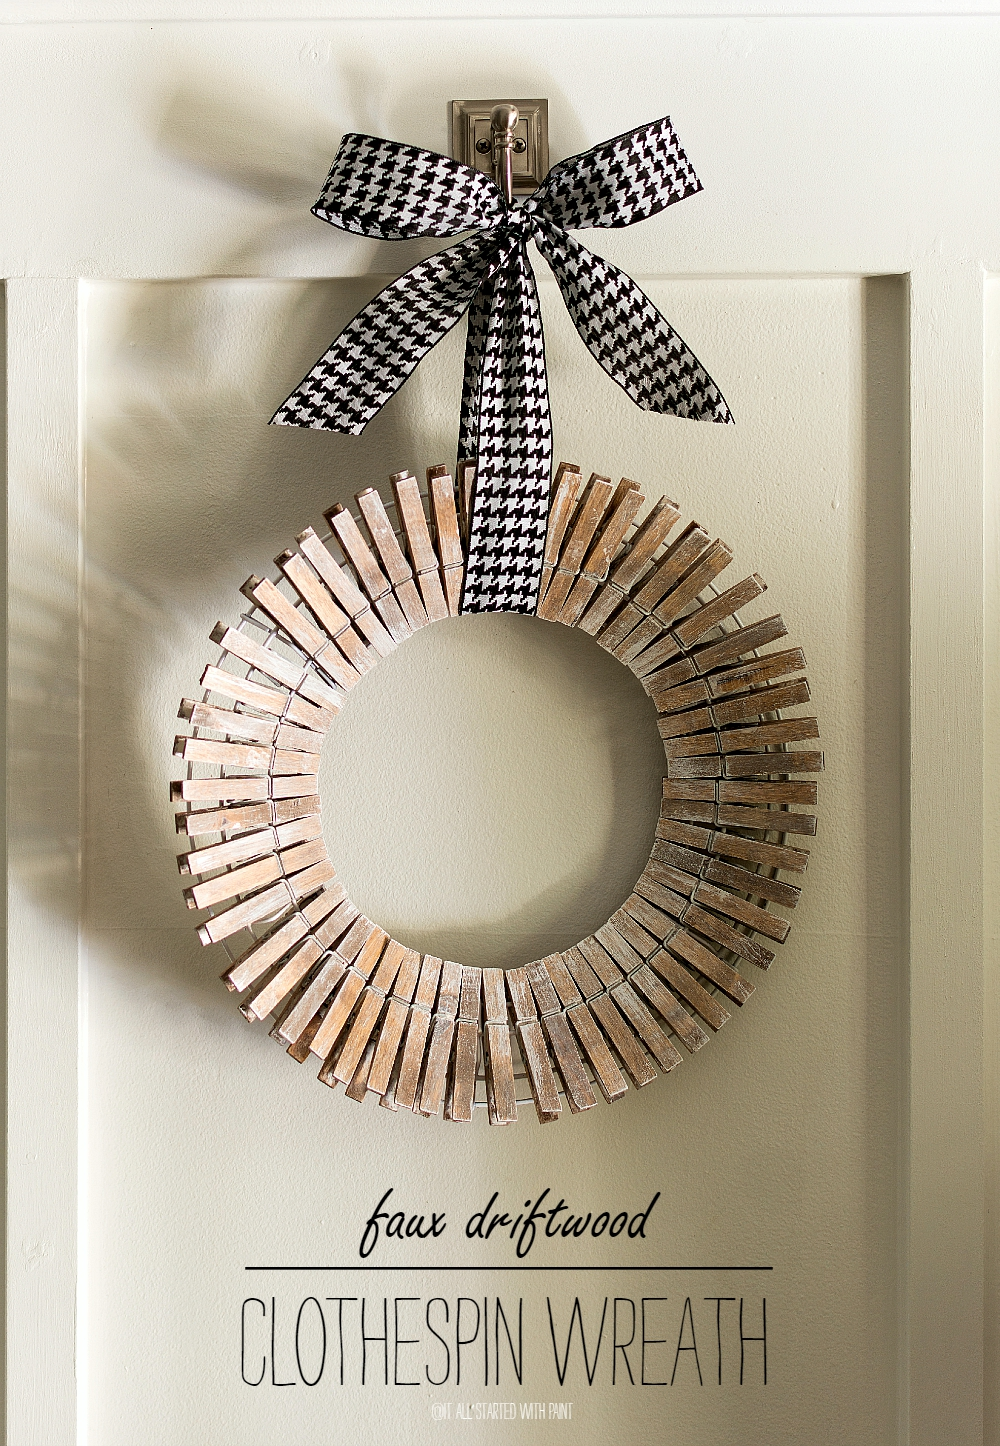 Clothespin Wreath Stained & Painted with Faux Driftwood Look